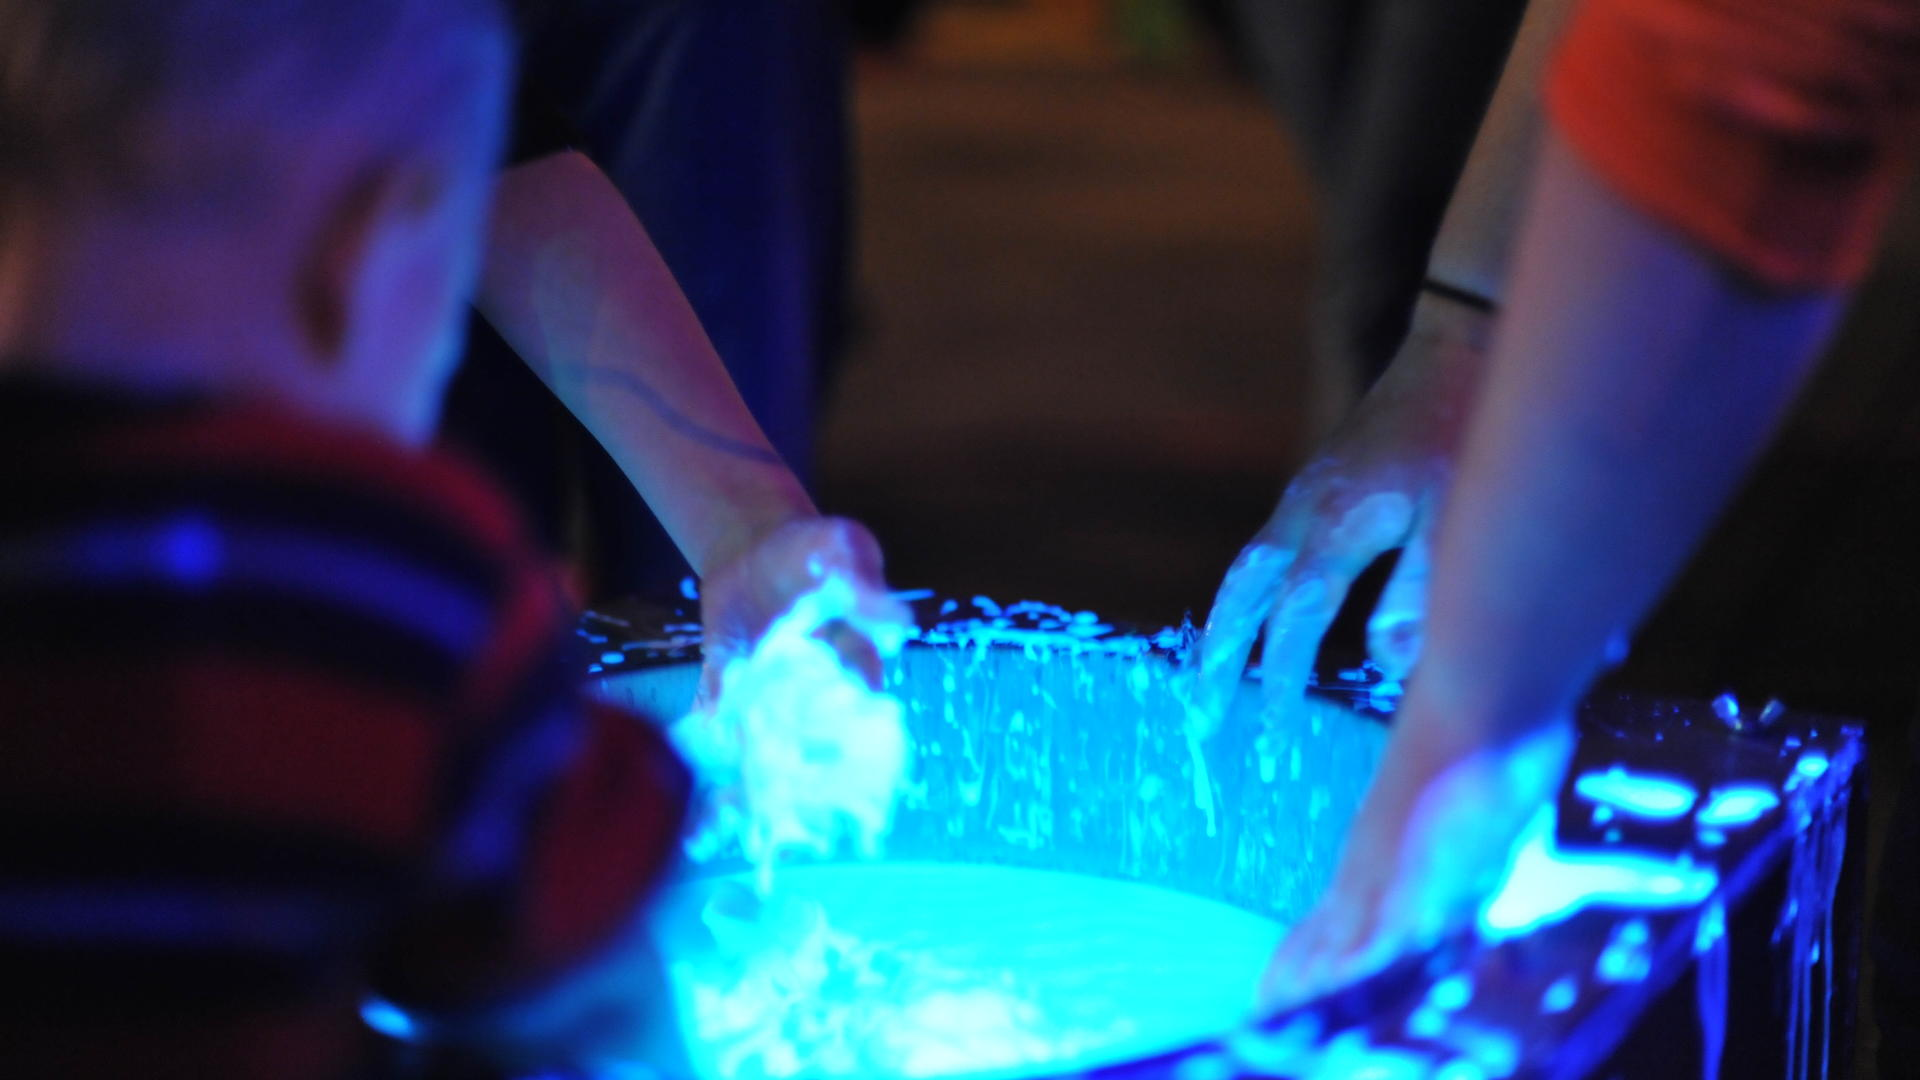 Physics students dip hands in neon blue fluid